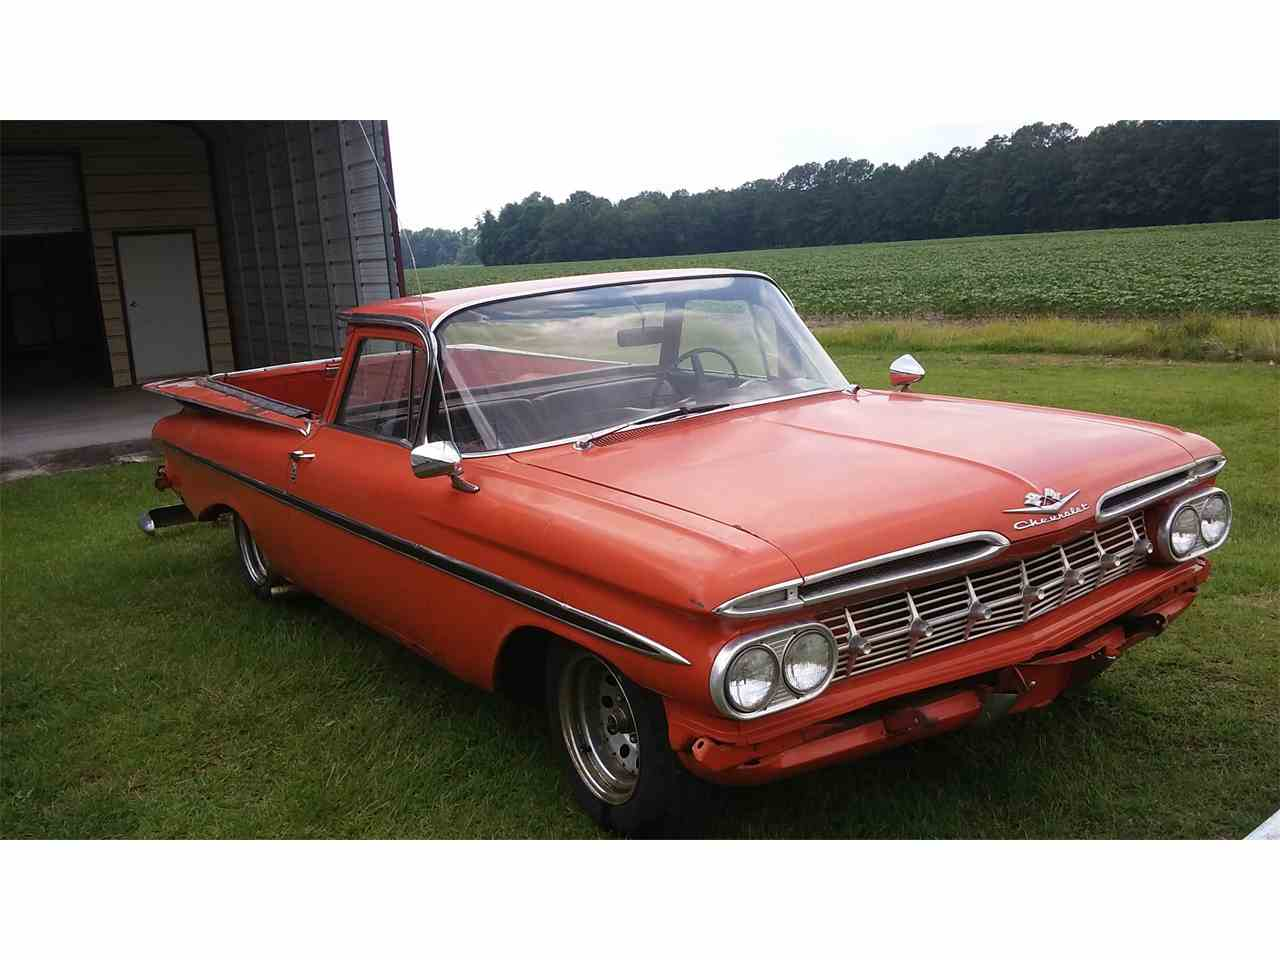 Large Picture of Classic 1959 Chevrolet El Camino - $9,500.00 - IWY1